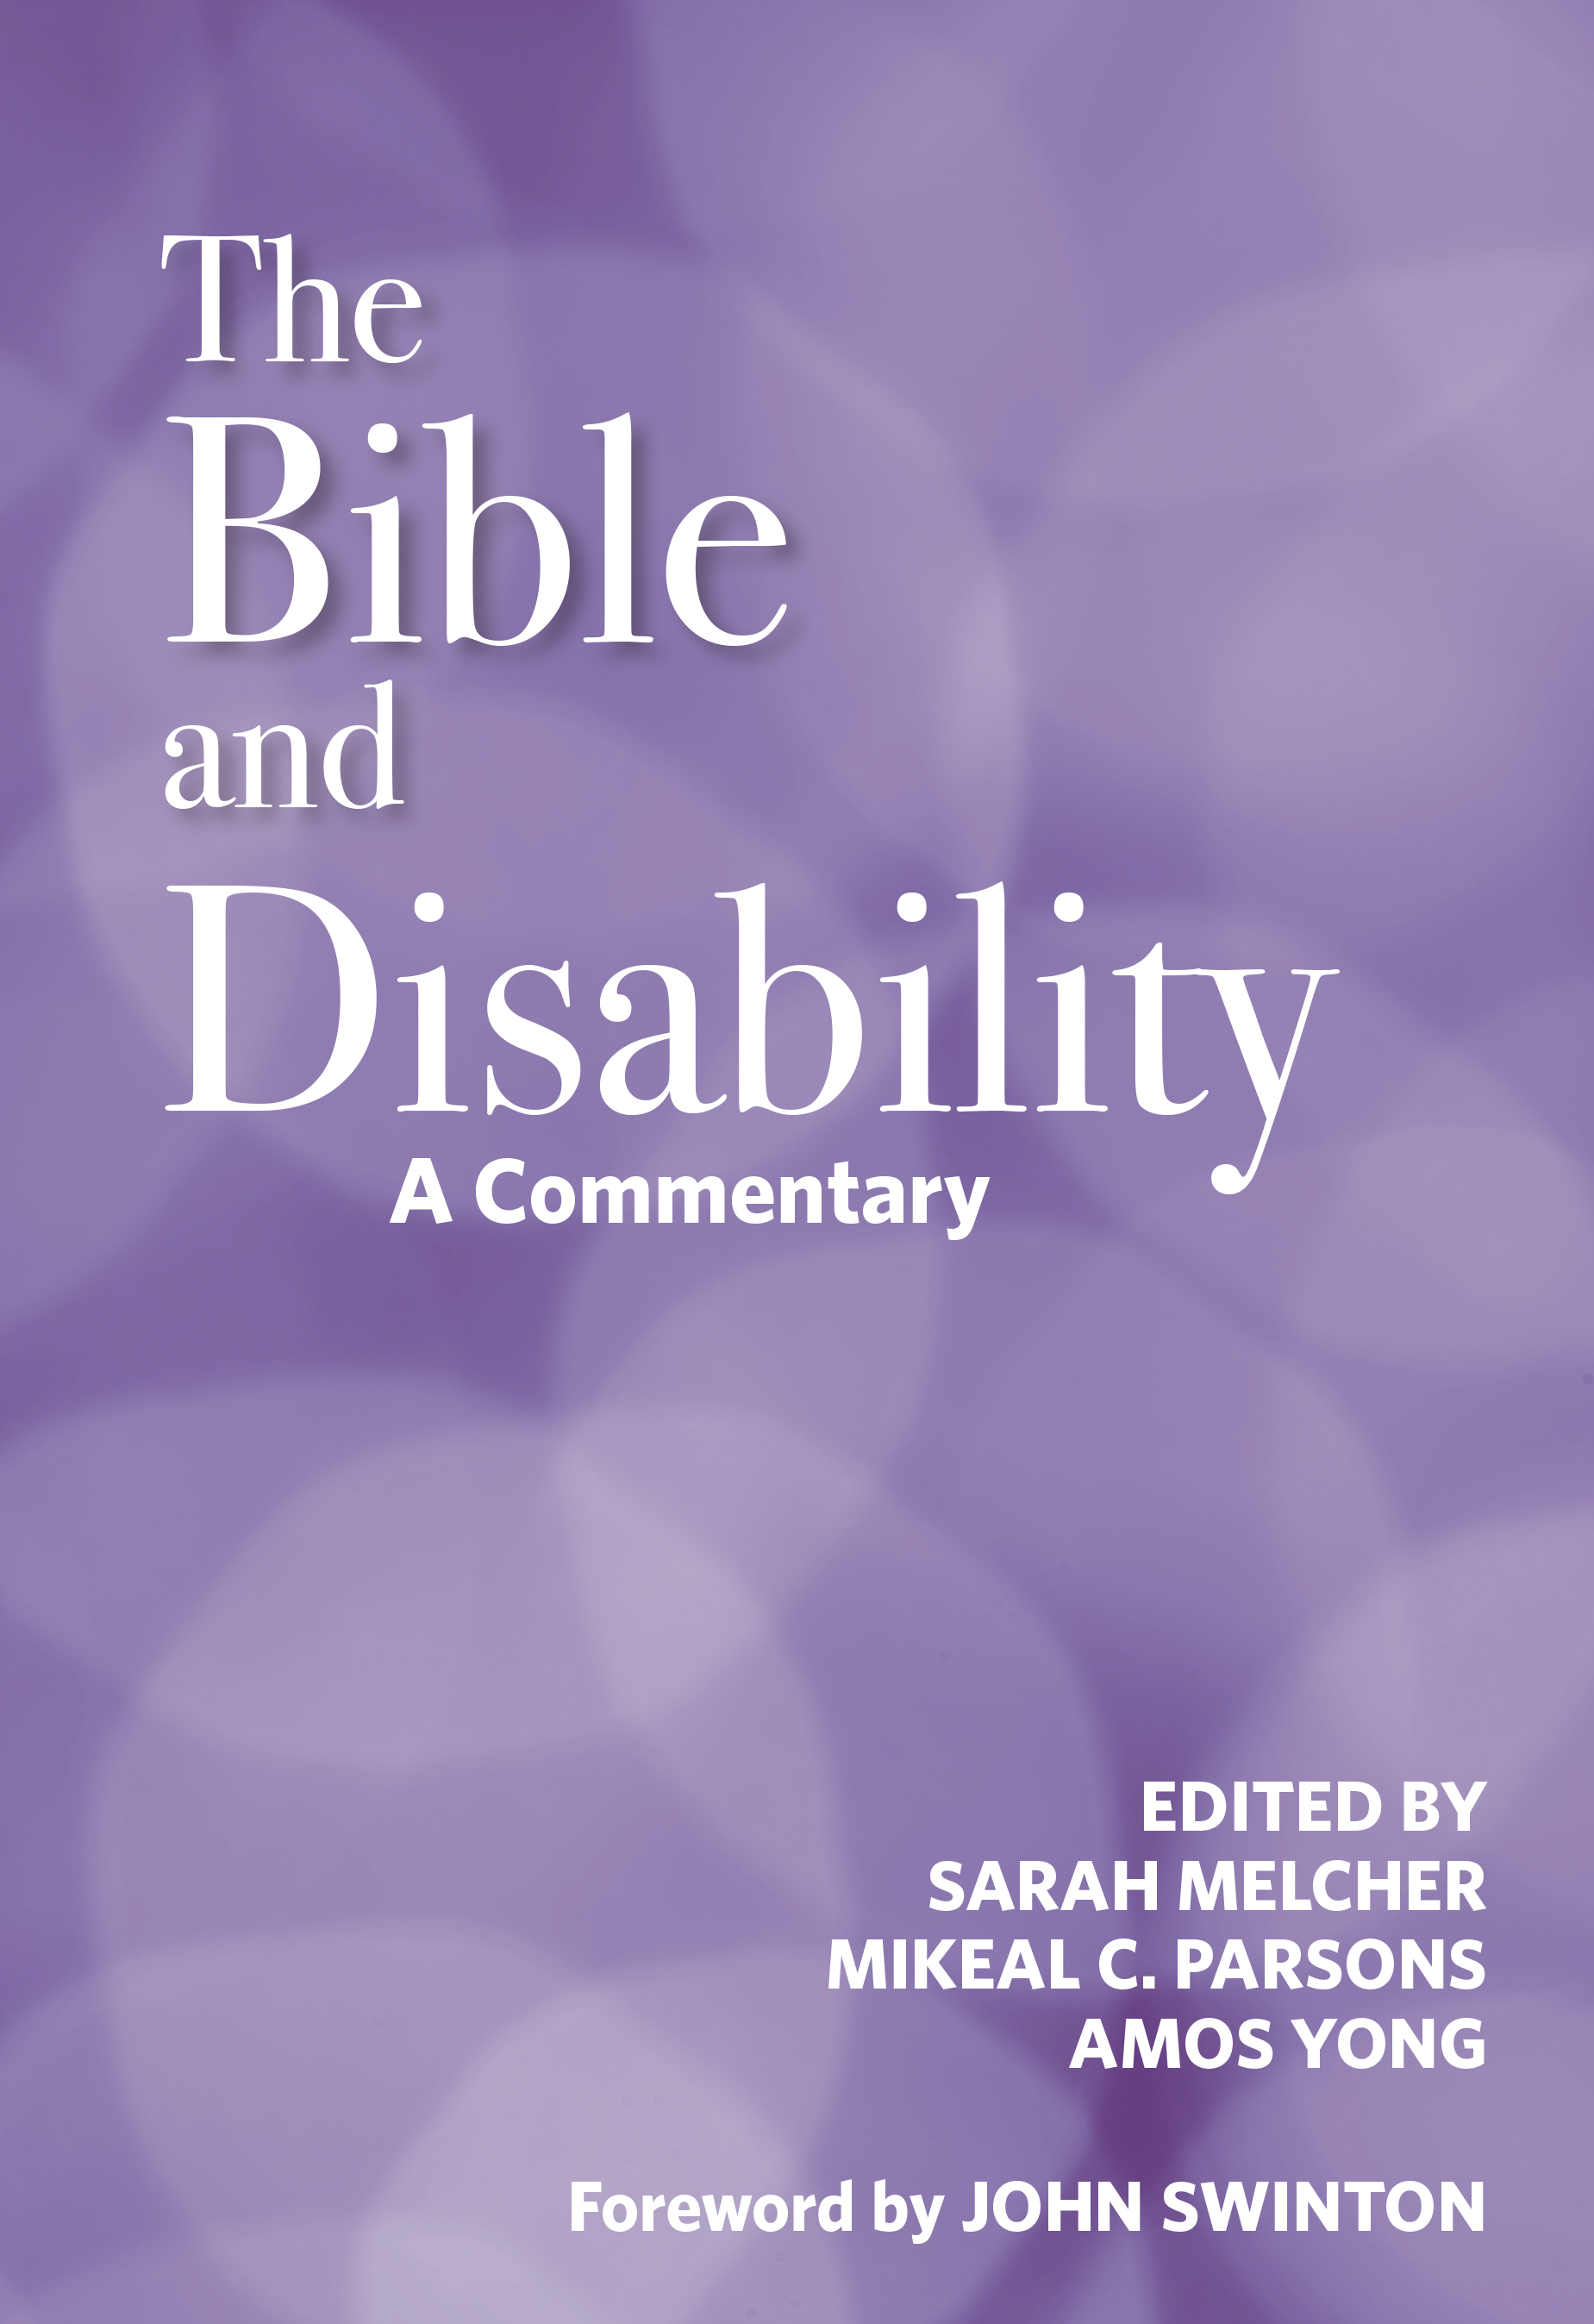 The Bible and Disability